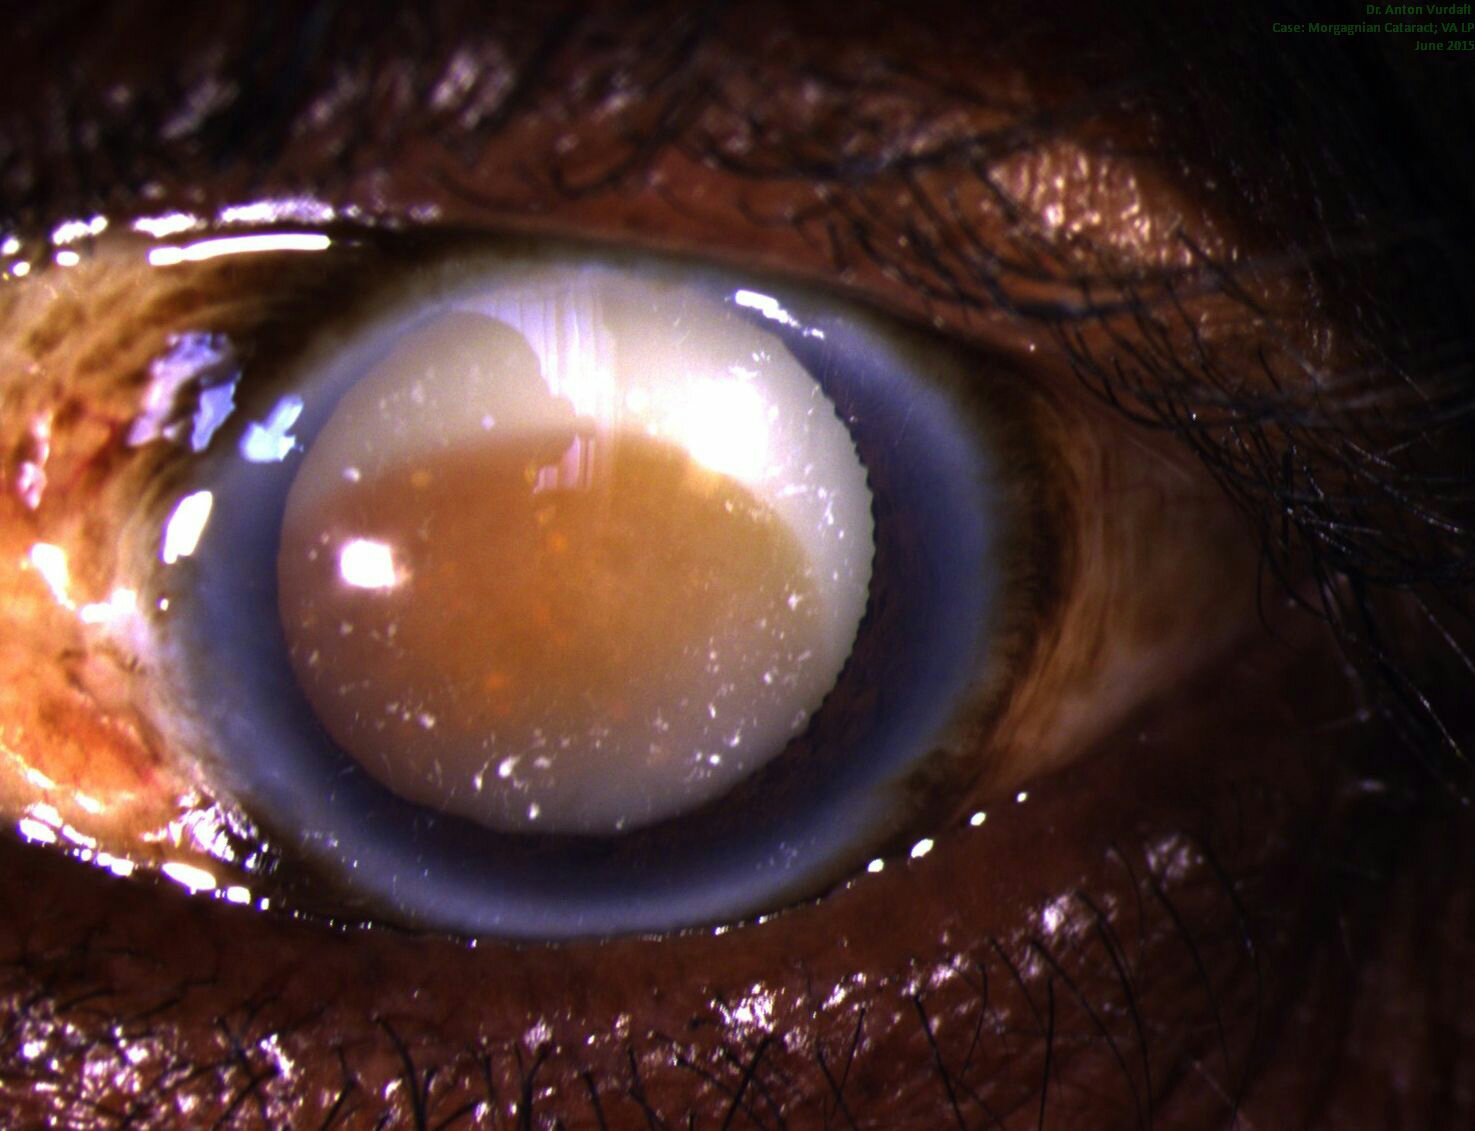 Morgagni cataract